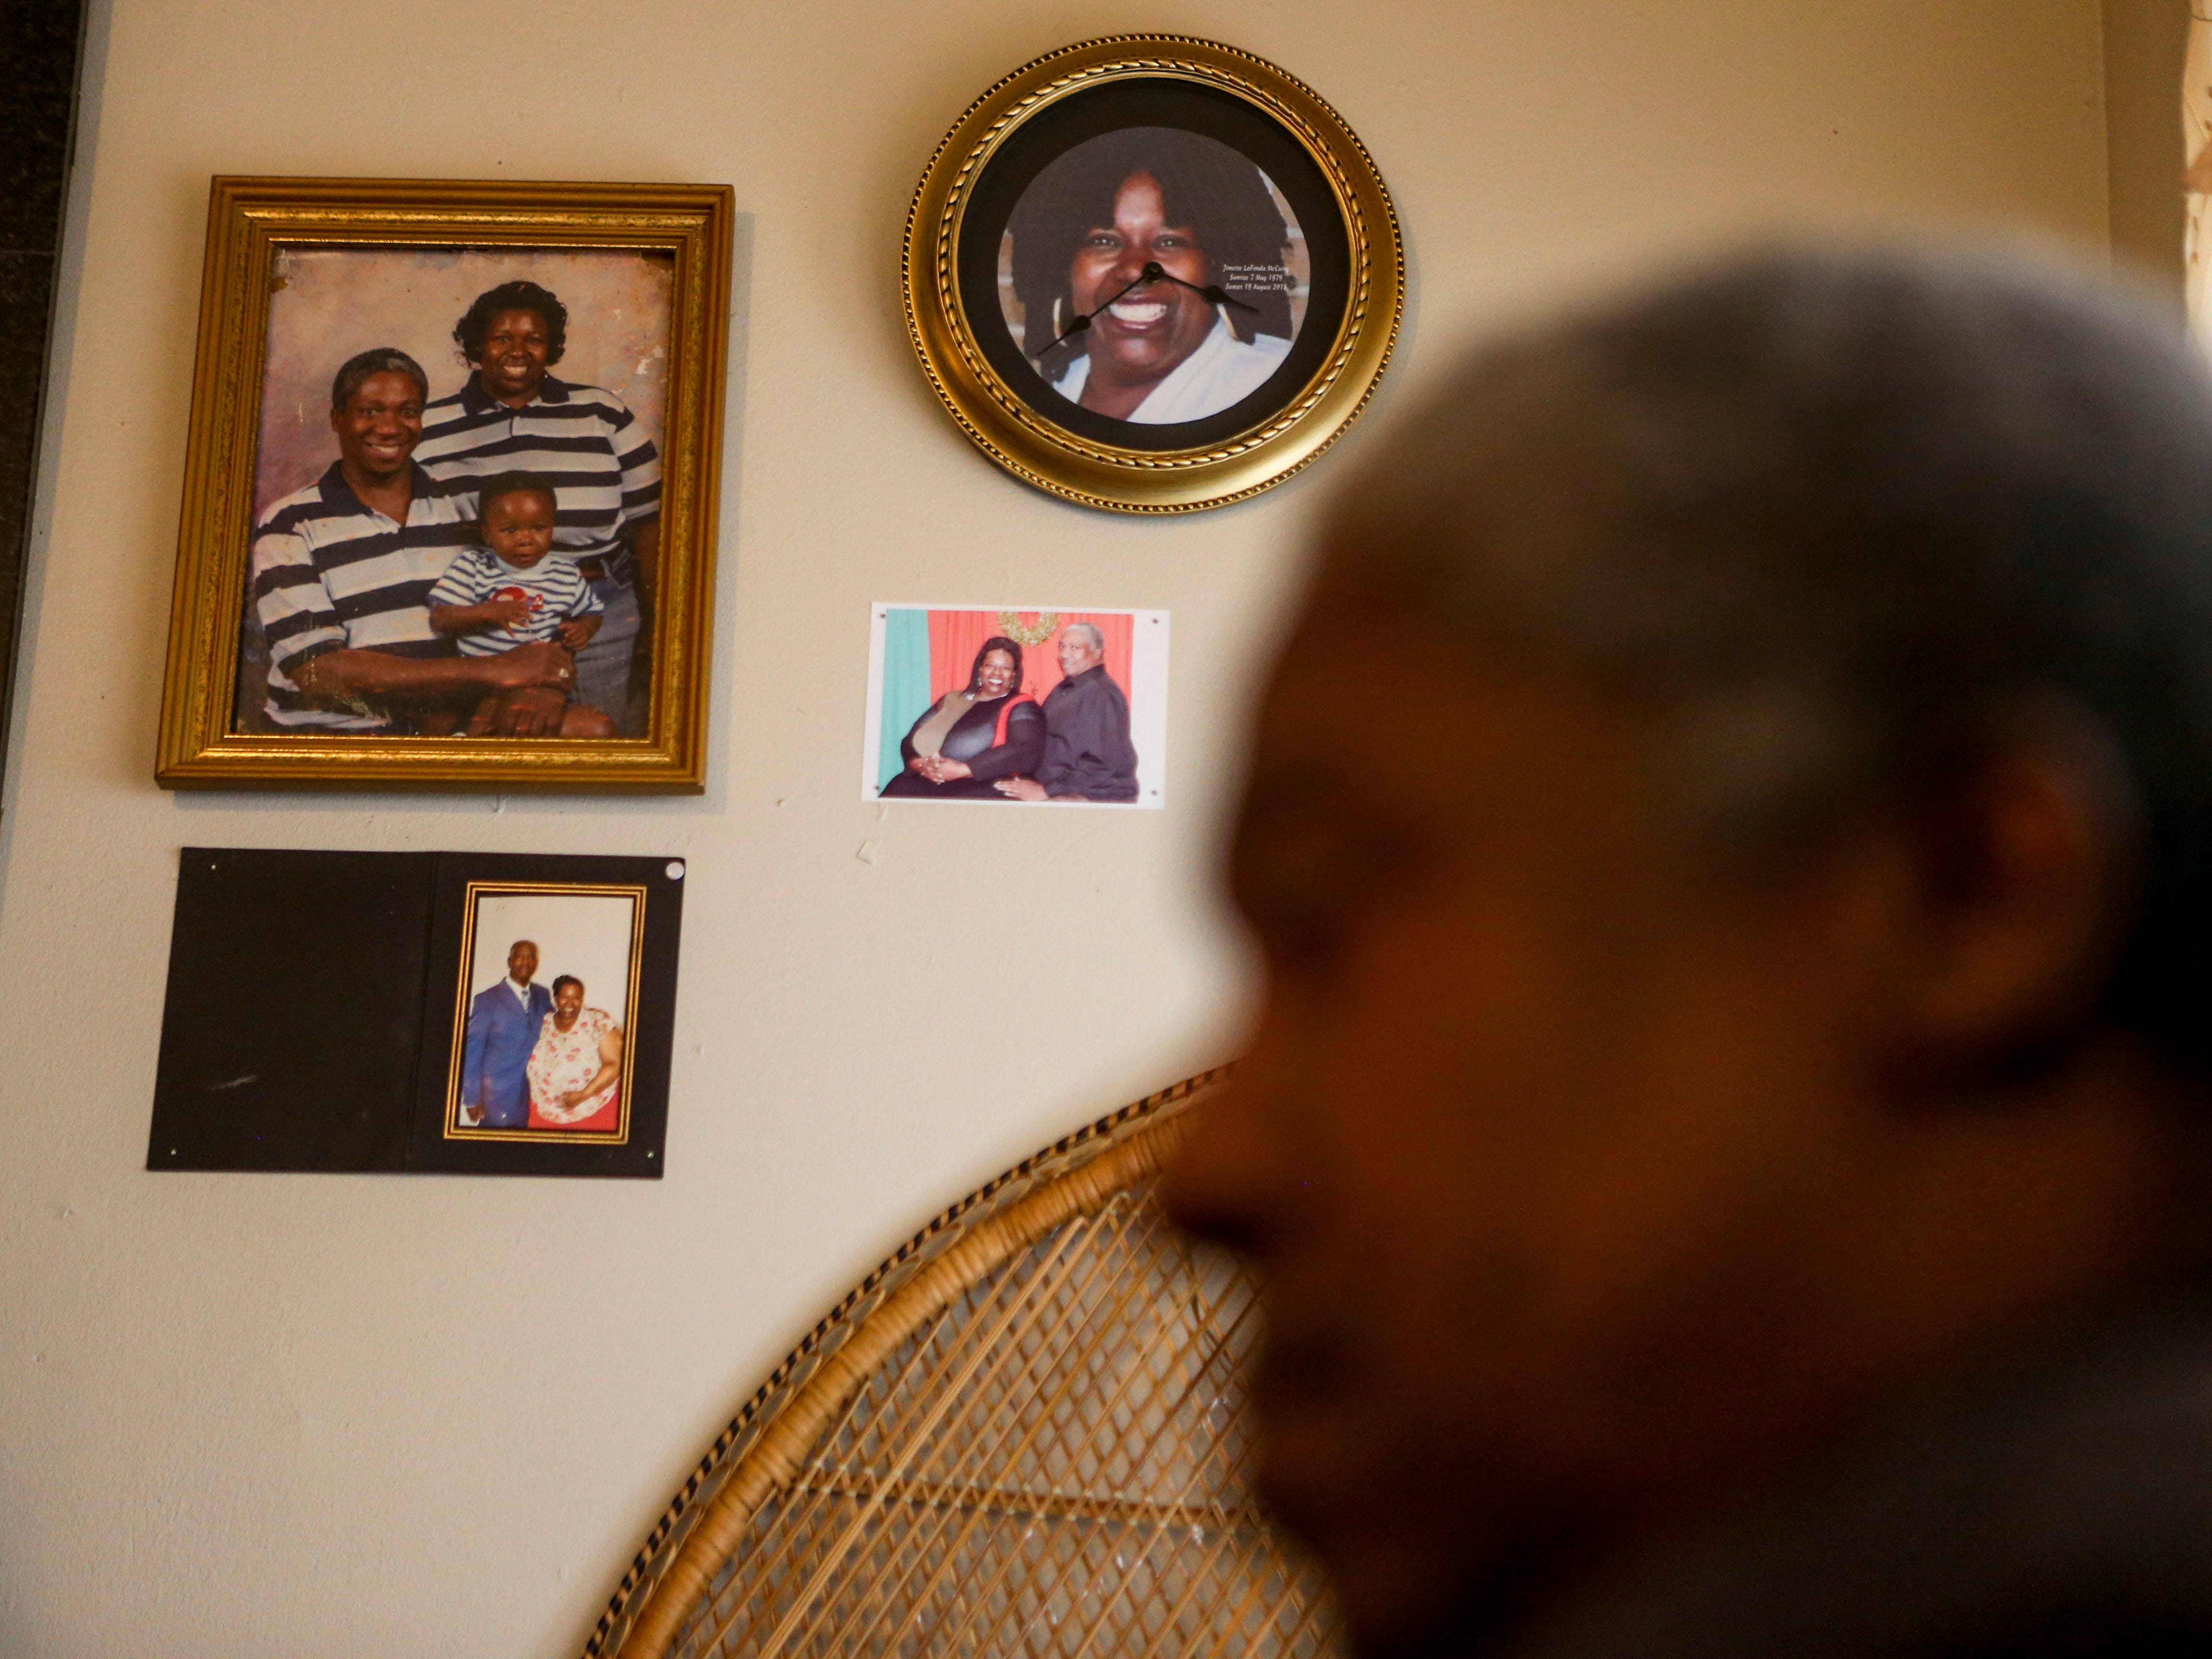 Family portraits and a clock with the face of Jimett McCurry adorn the walls at the McCurry's home in Guardian Courts Apartments in Jackson, Tenn., on Tuesday, Oct. 23, 2018.